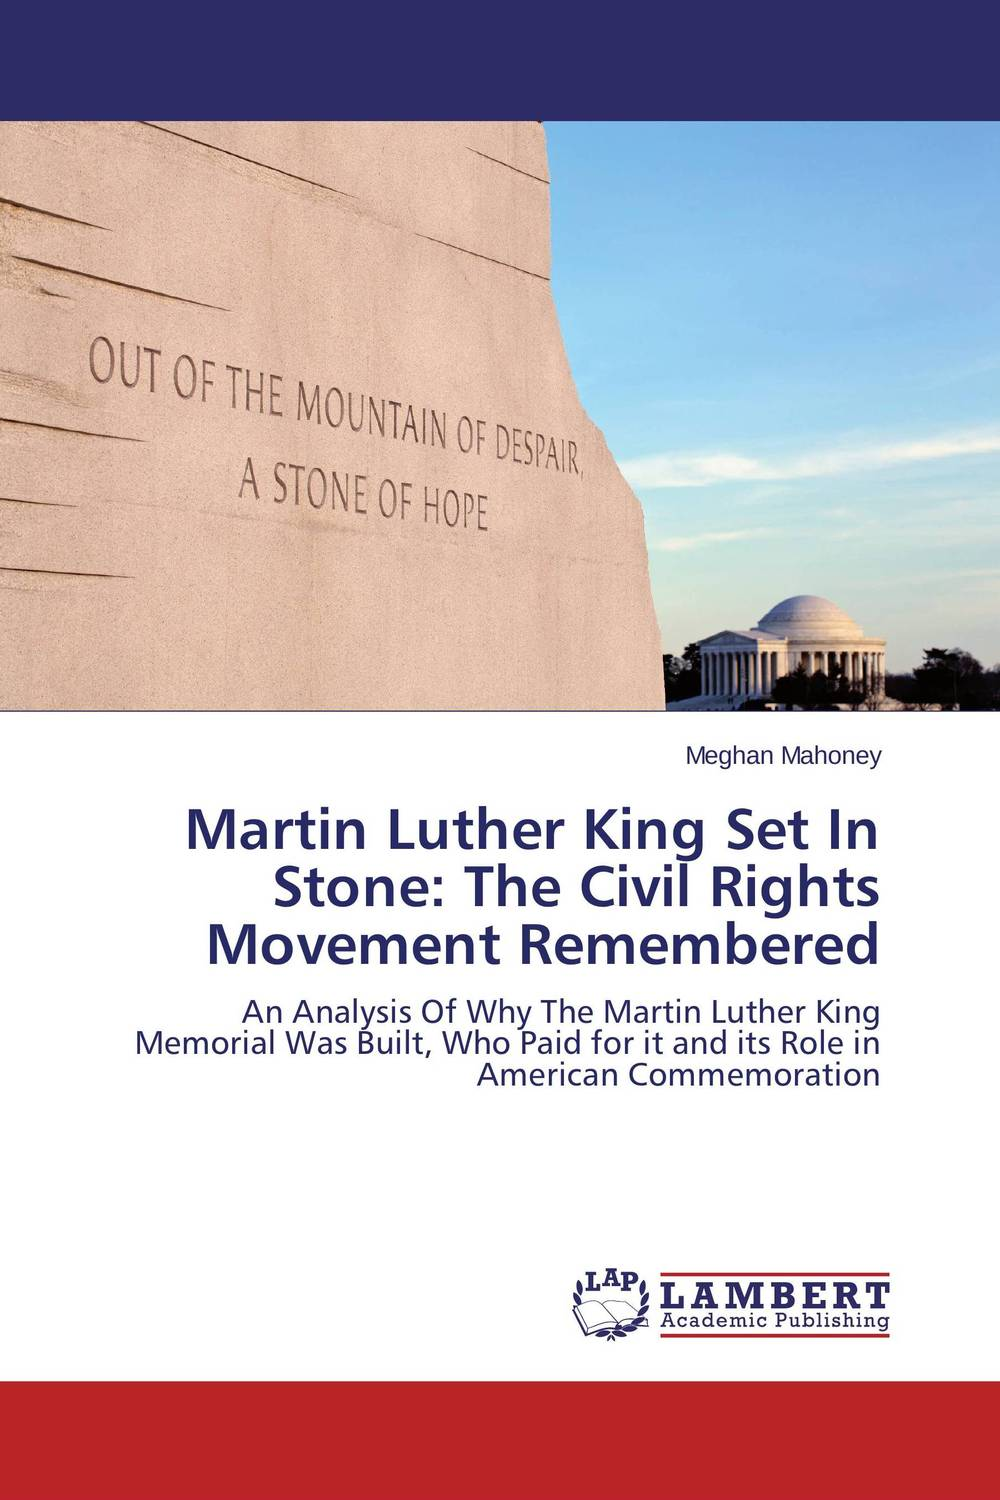 Martin Luther King Set In Stone: The Civil Rights Movement Remembered voluntary associations in tsarist russia – science patriotism and civil society